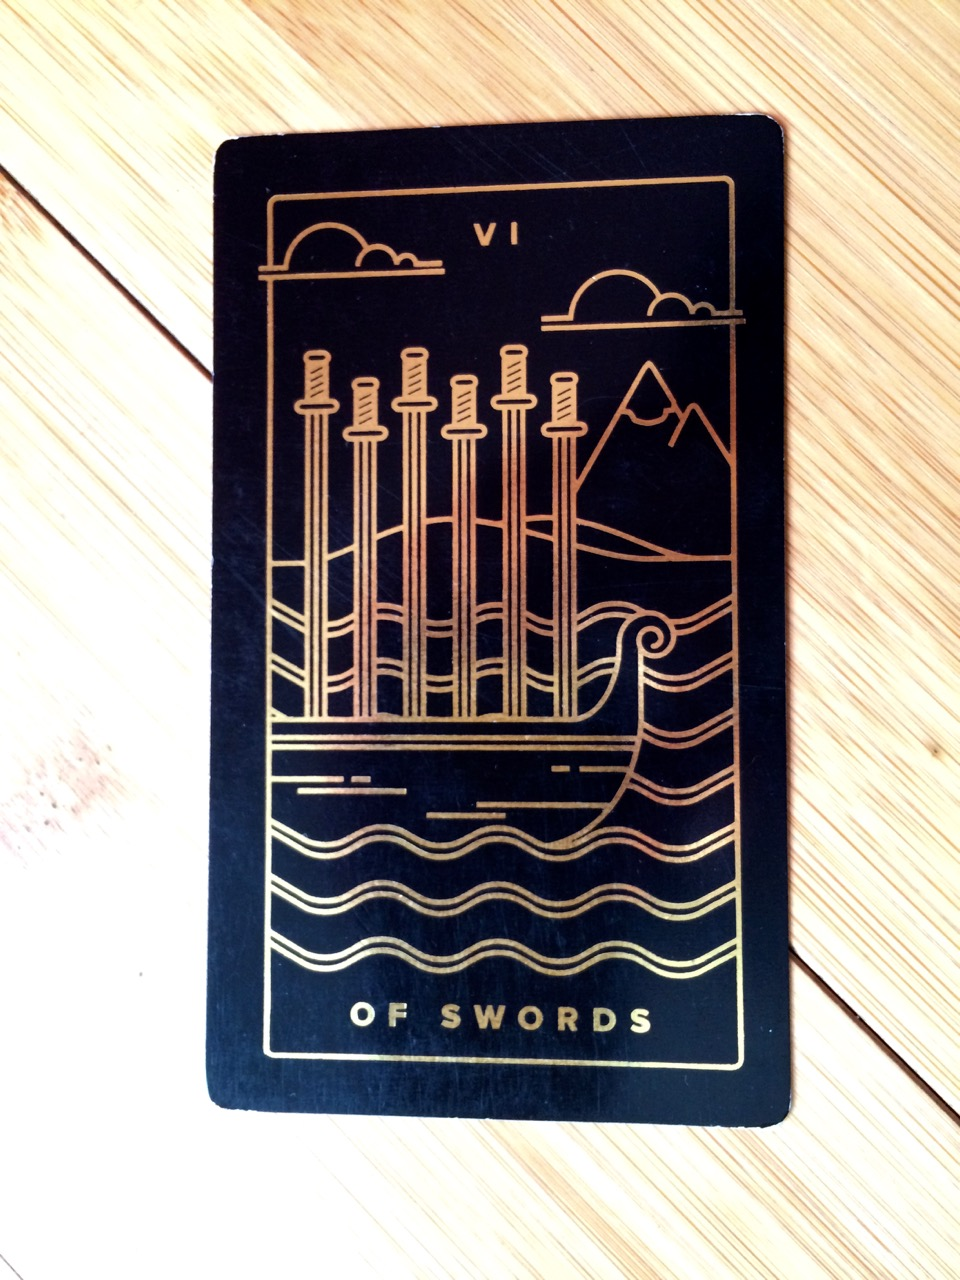 Six of Swords, Golden Thread Tarot